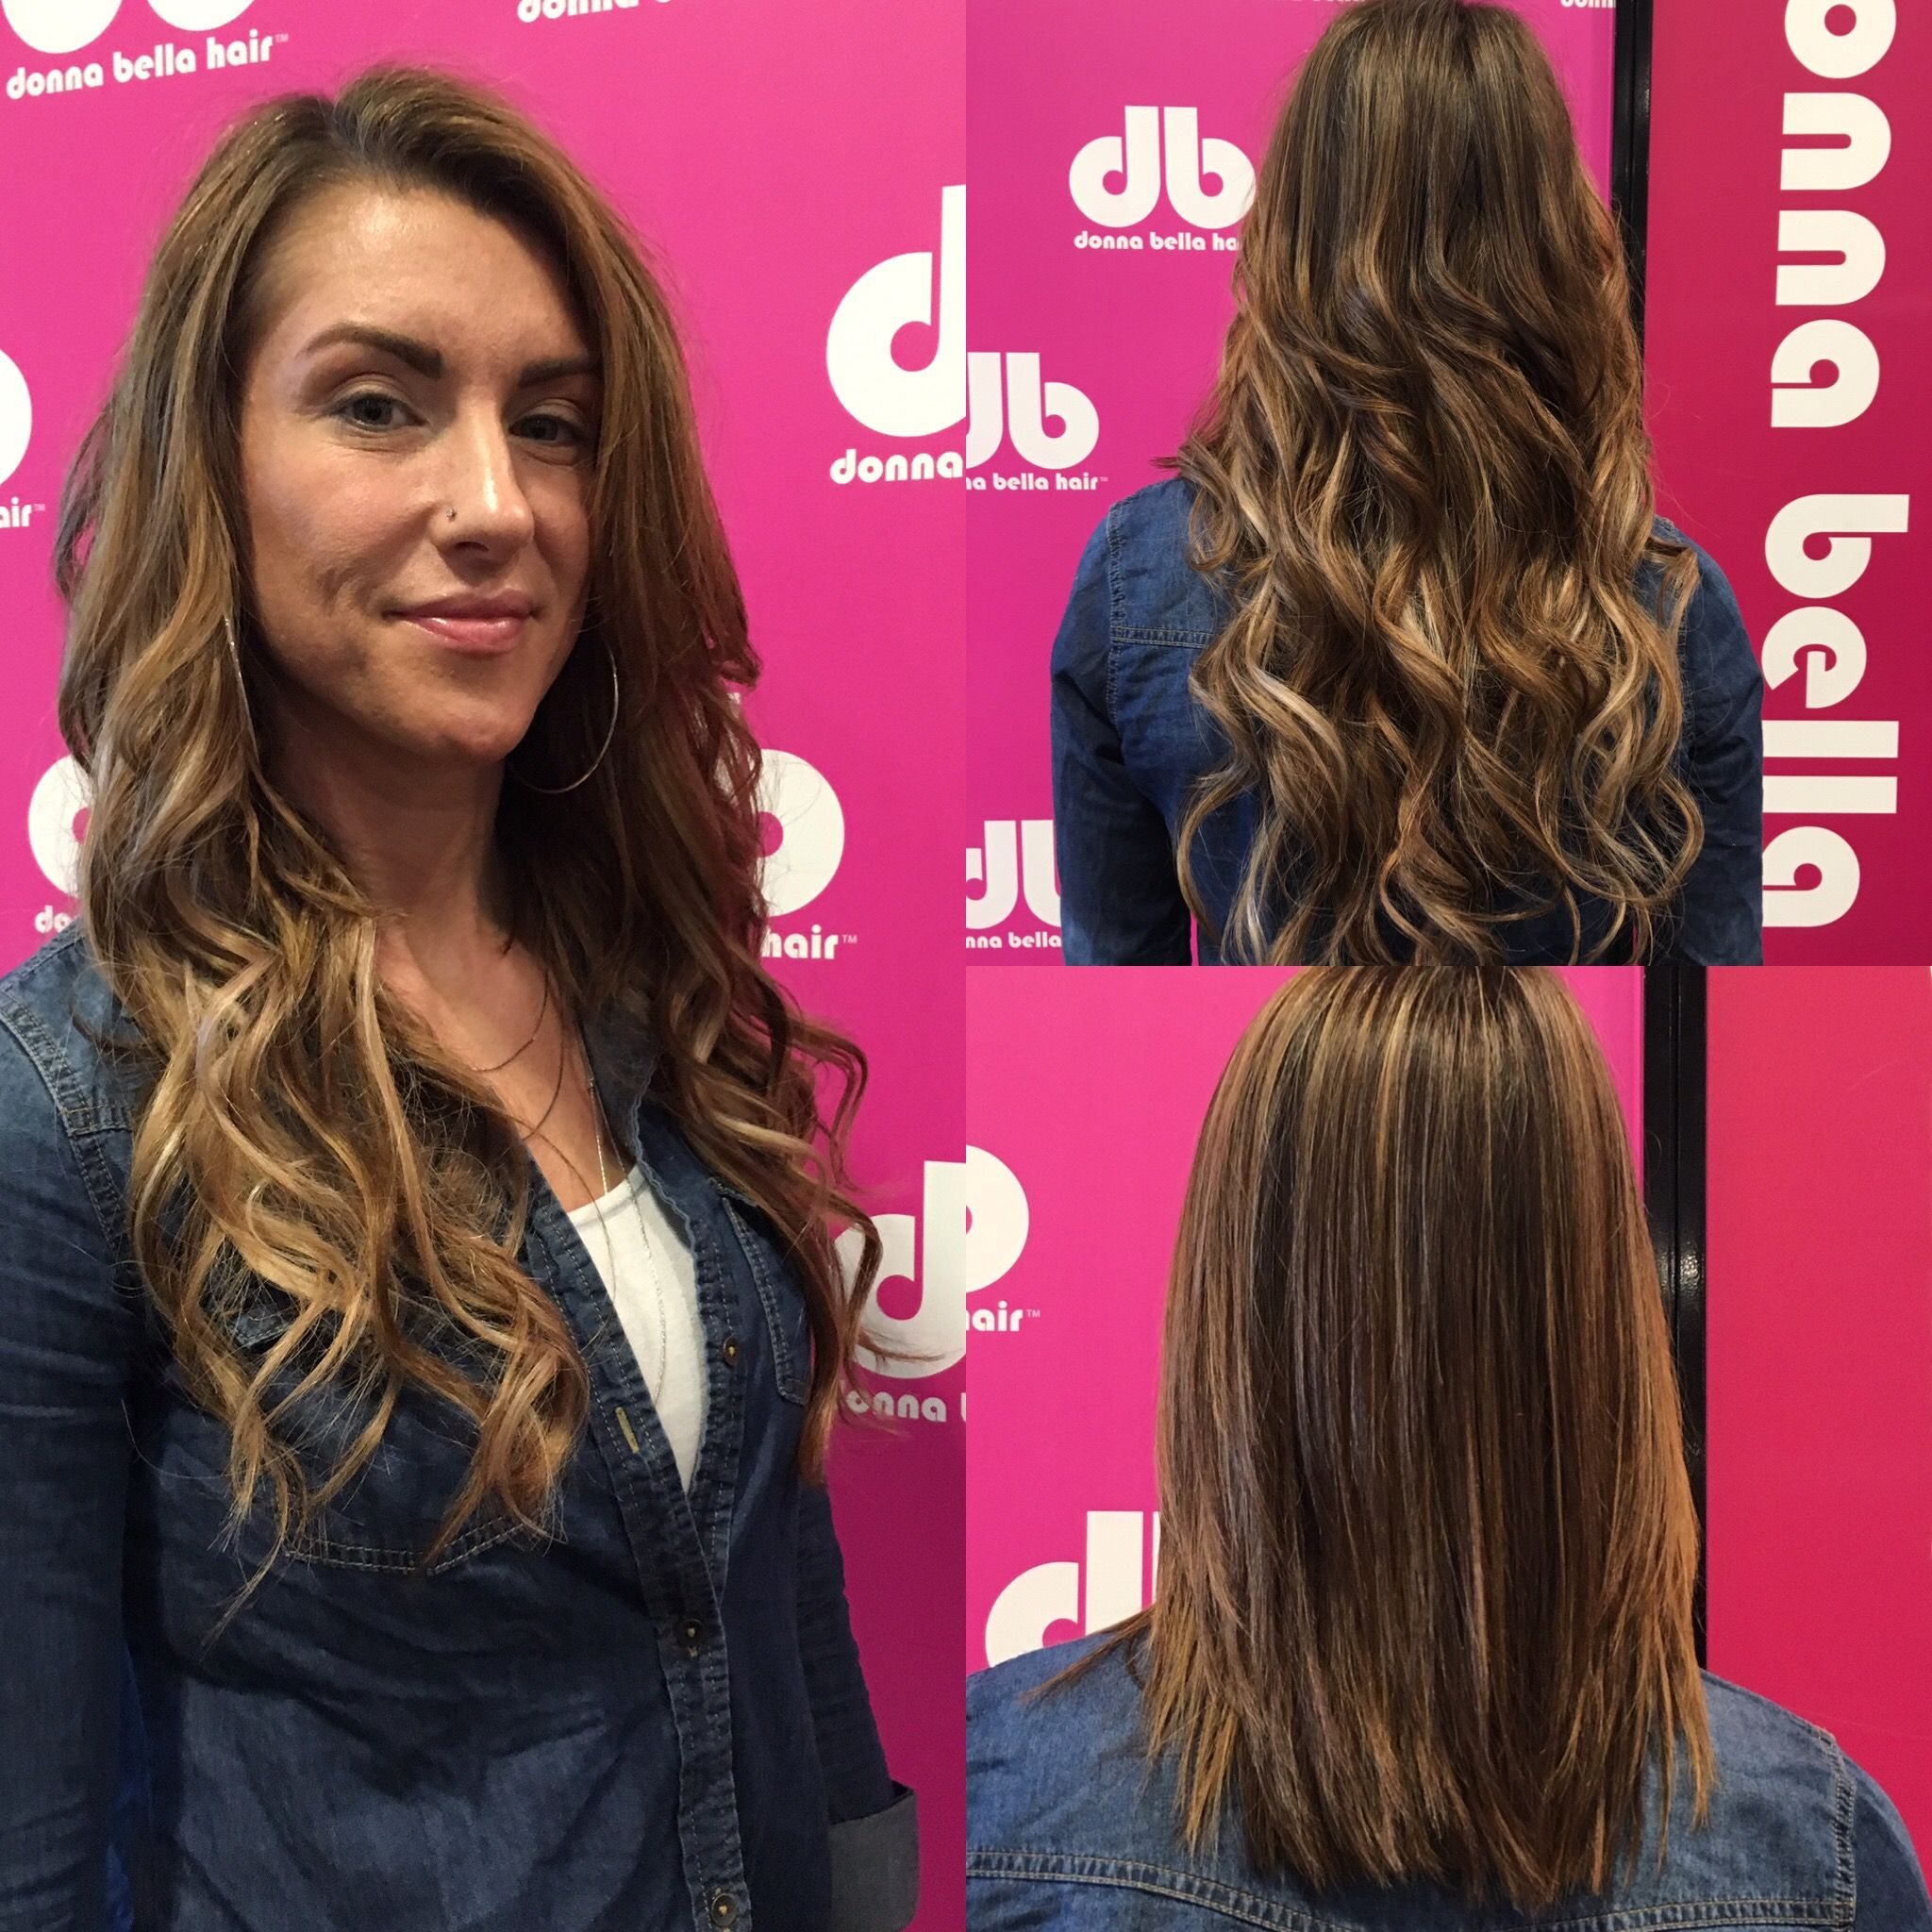 Adding Length Easily With Some Donna Bella Hair Extensions By